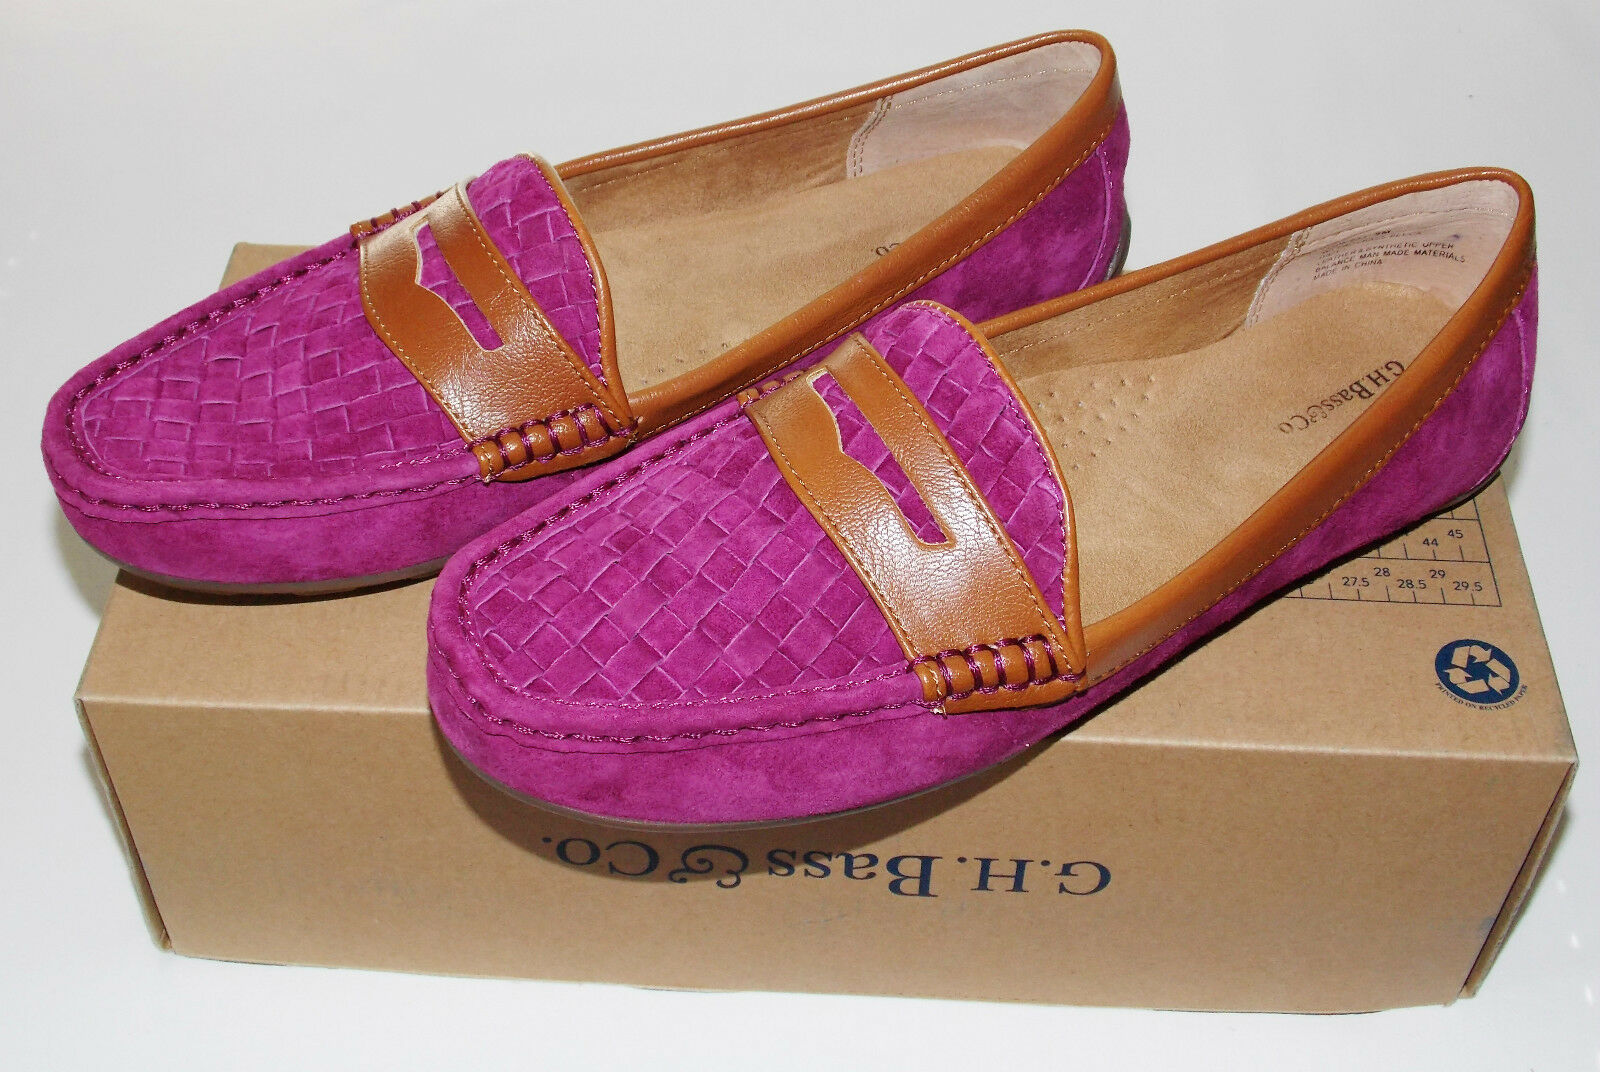 NWB G.H. Bass & Co. Becca Loafers Schuhes Schuhes Loafers 9 M Suede Leder & Synthetic Up Magenta ac2f74